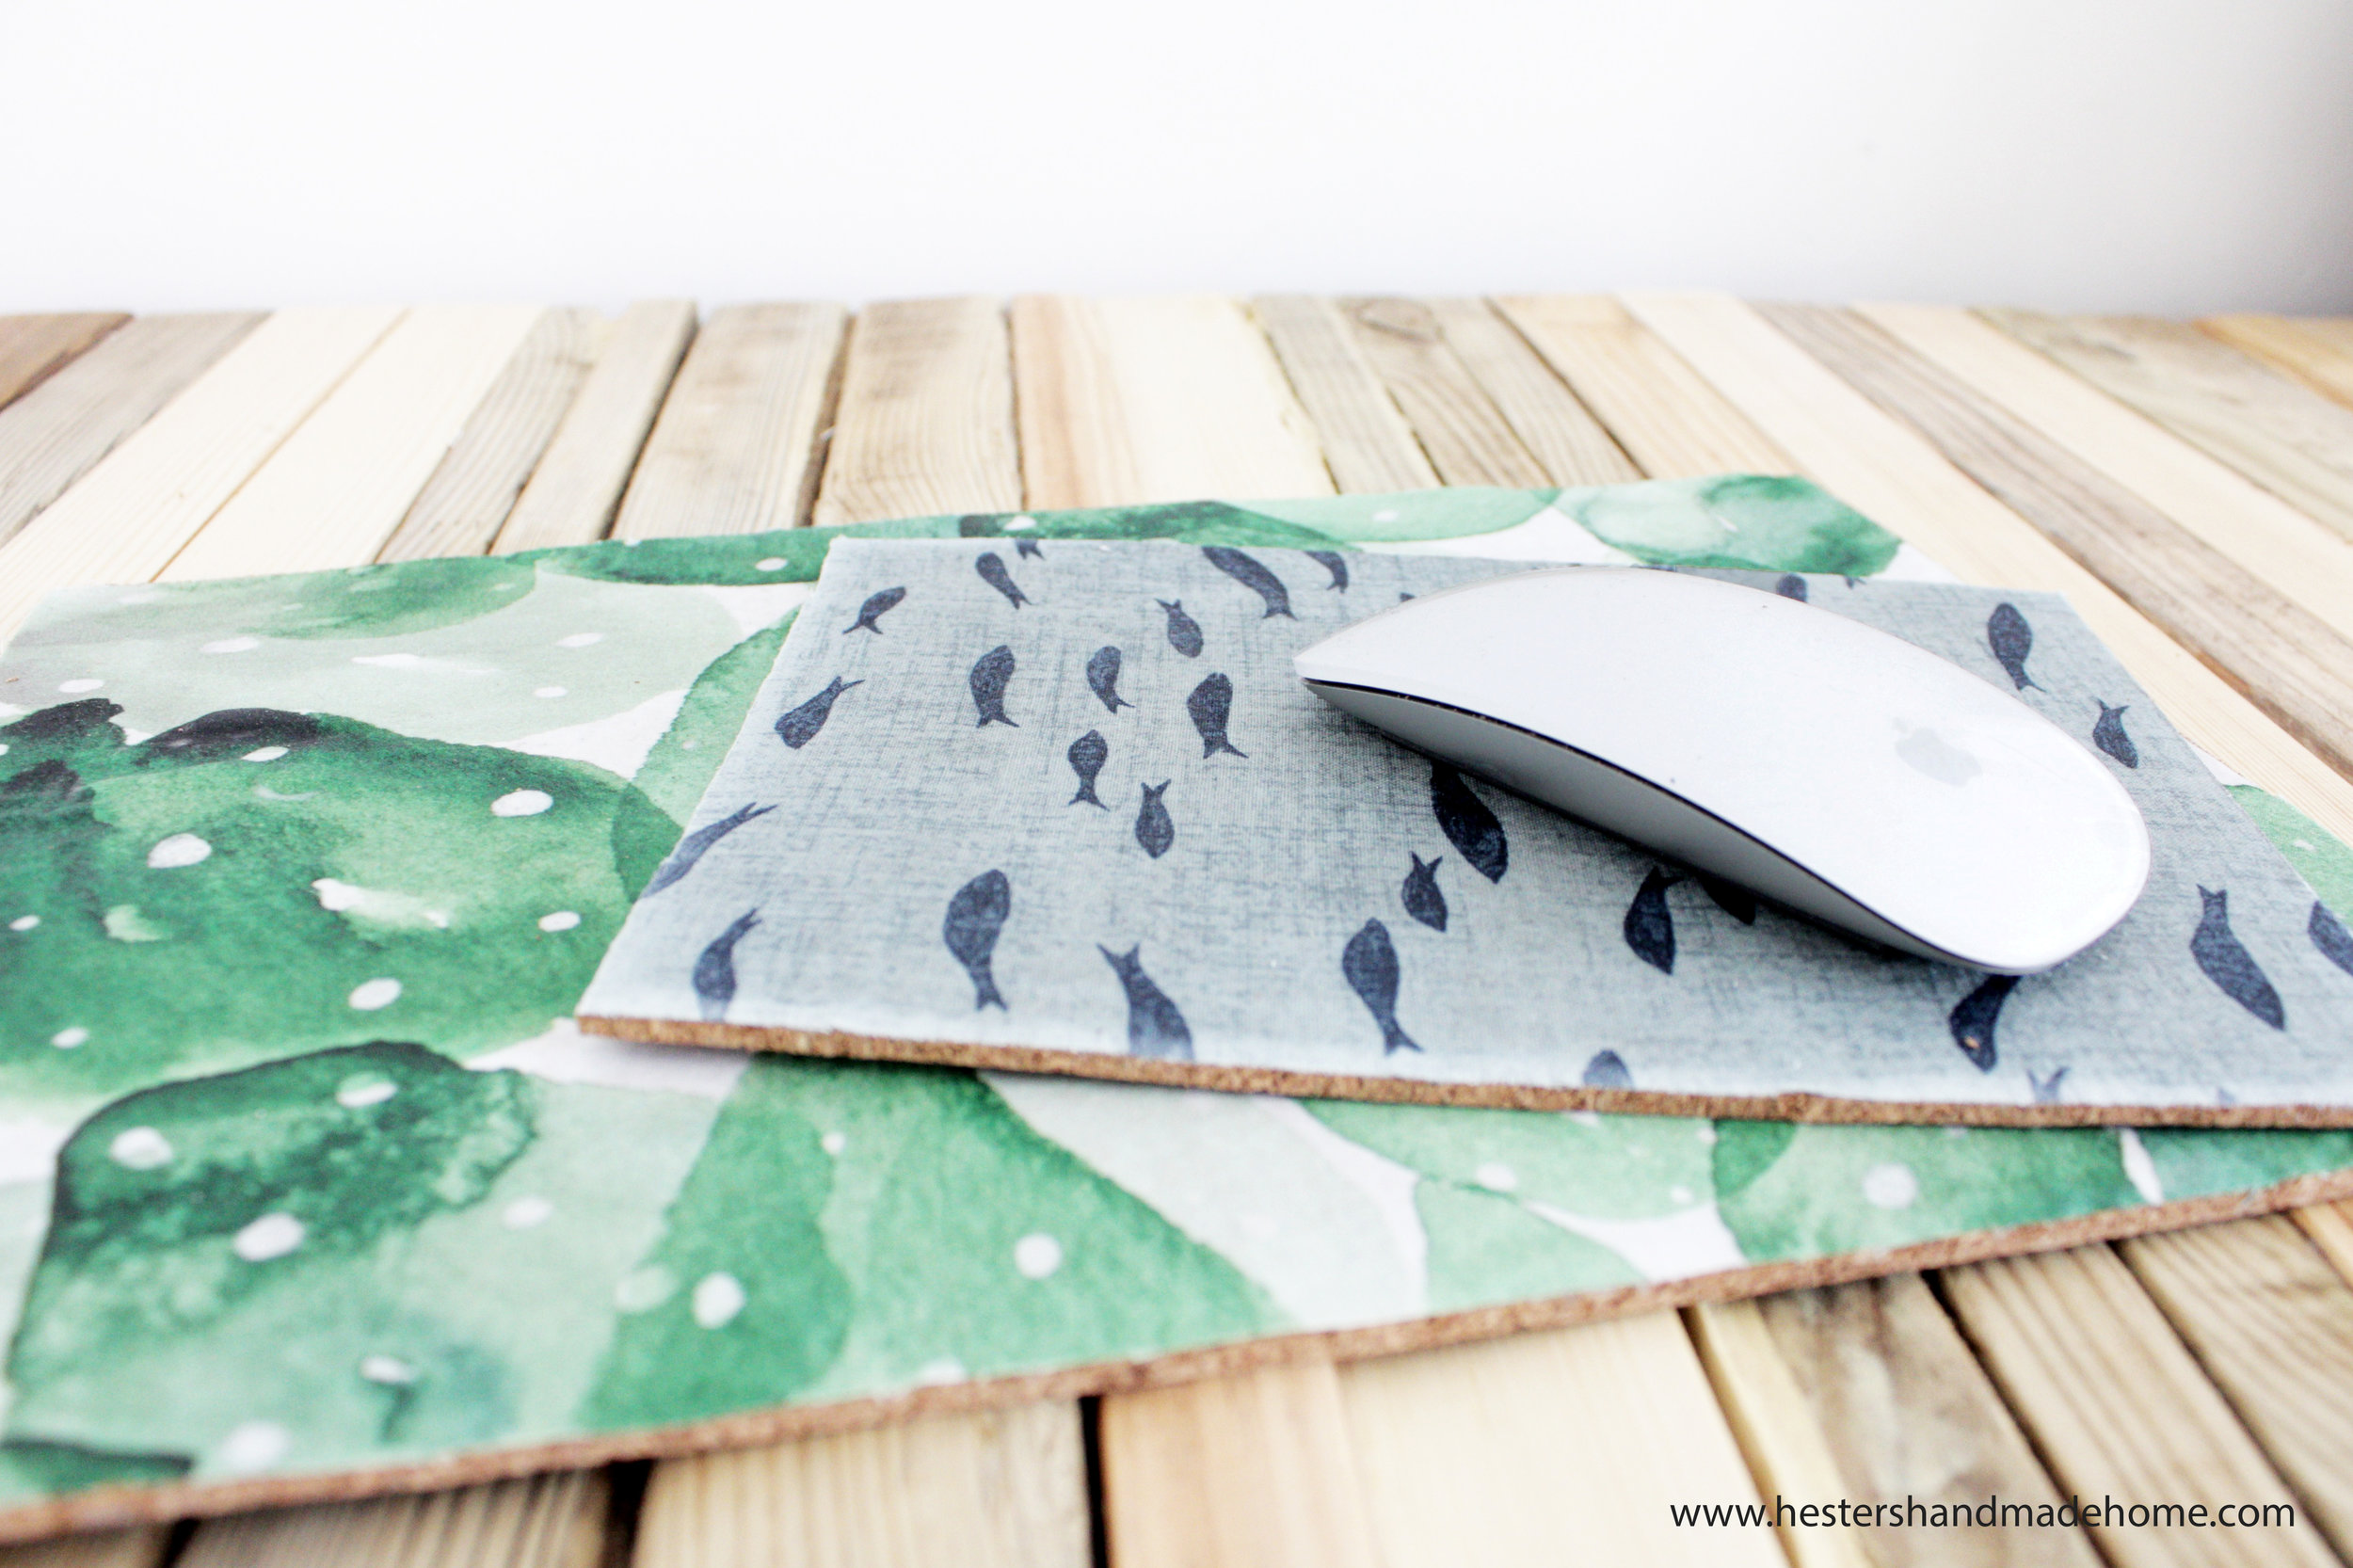 make your own maouse mat by Hesters handmade home